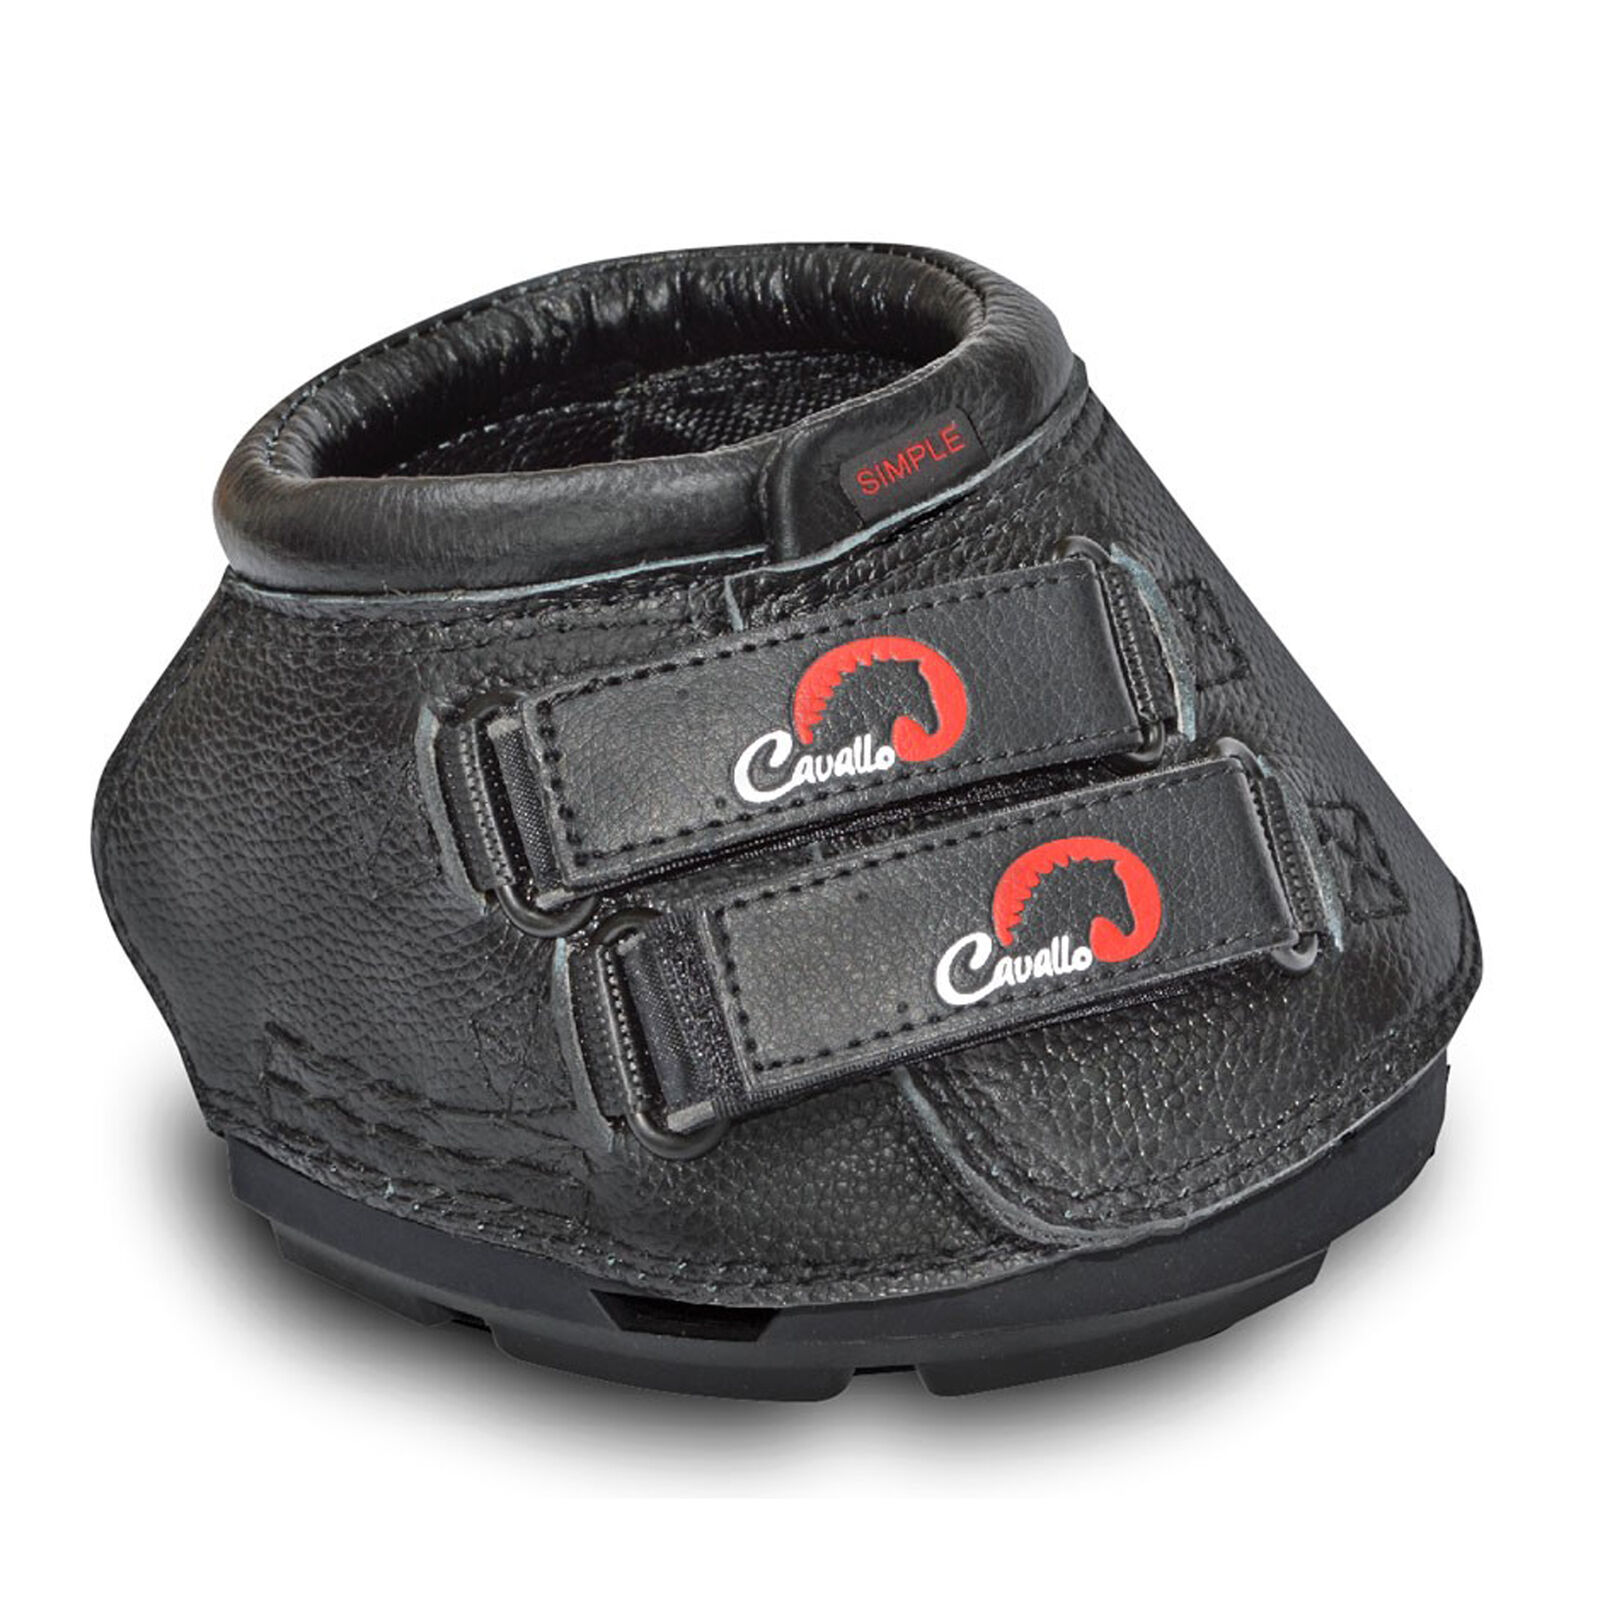 Cavallo  Simple Boot Hoof Boot for Barefoot Horses on Trails Sold in Pairs  new listing